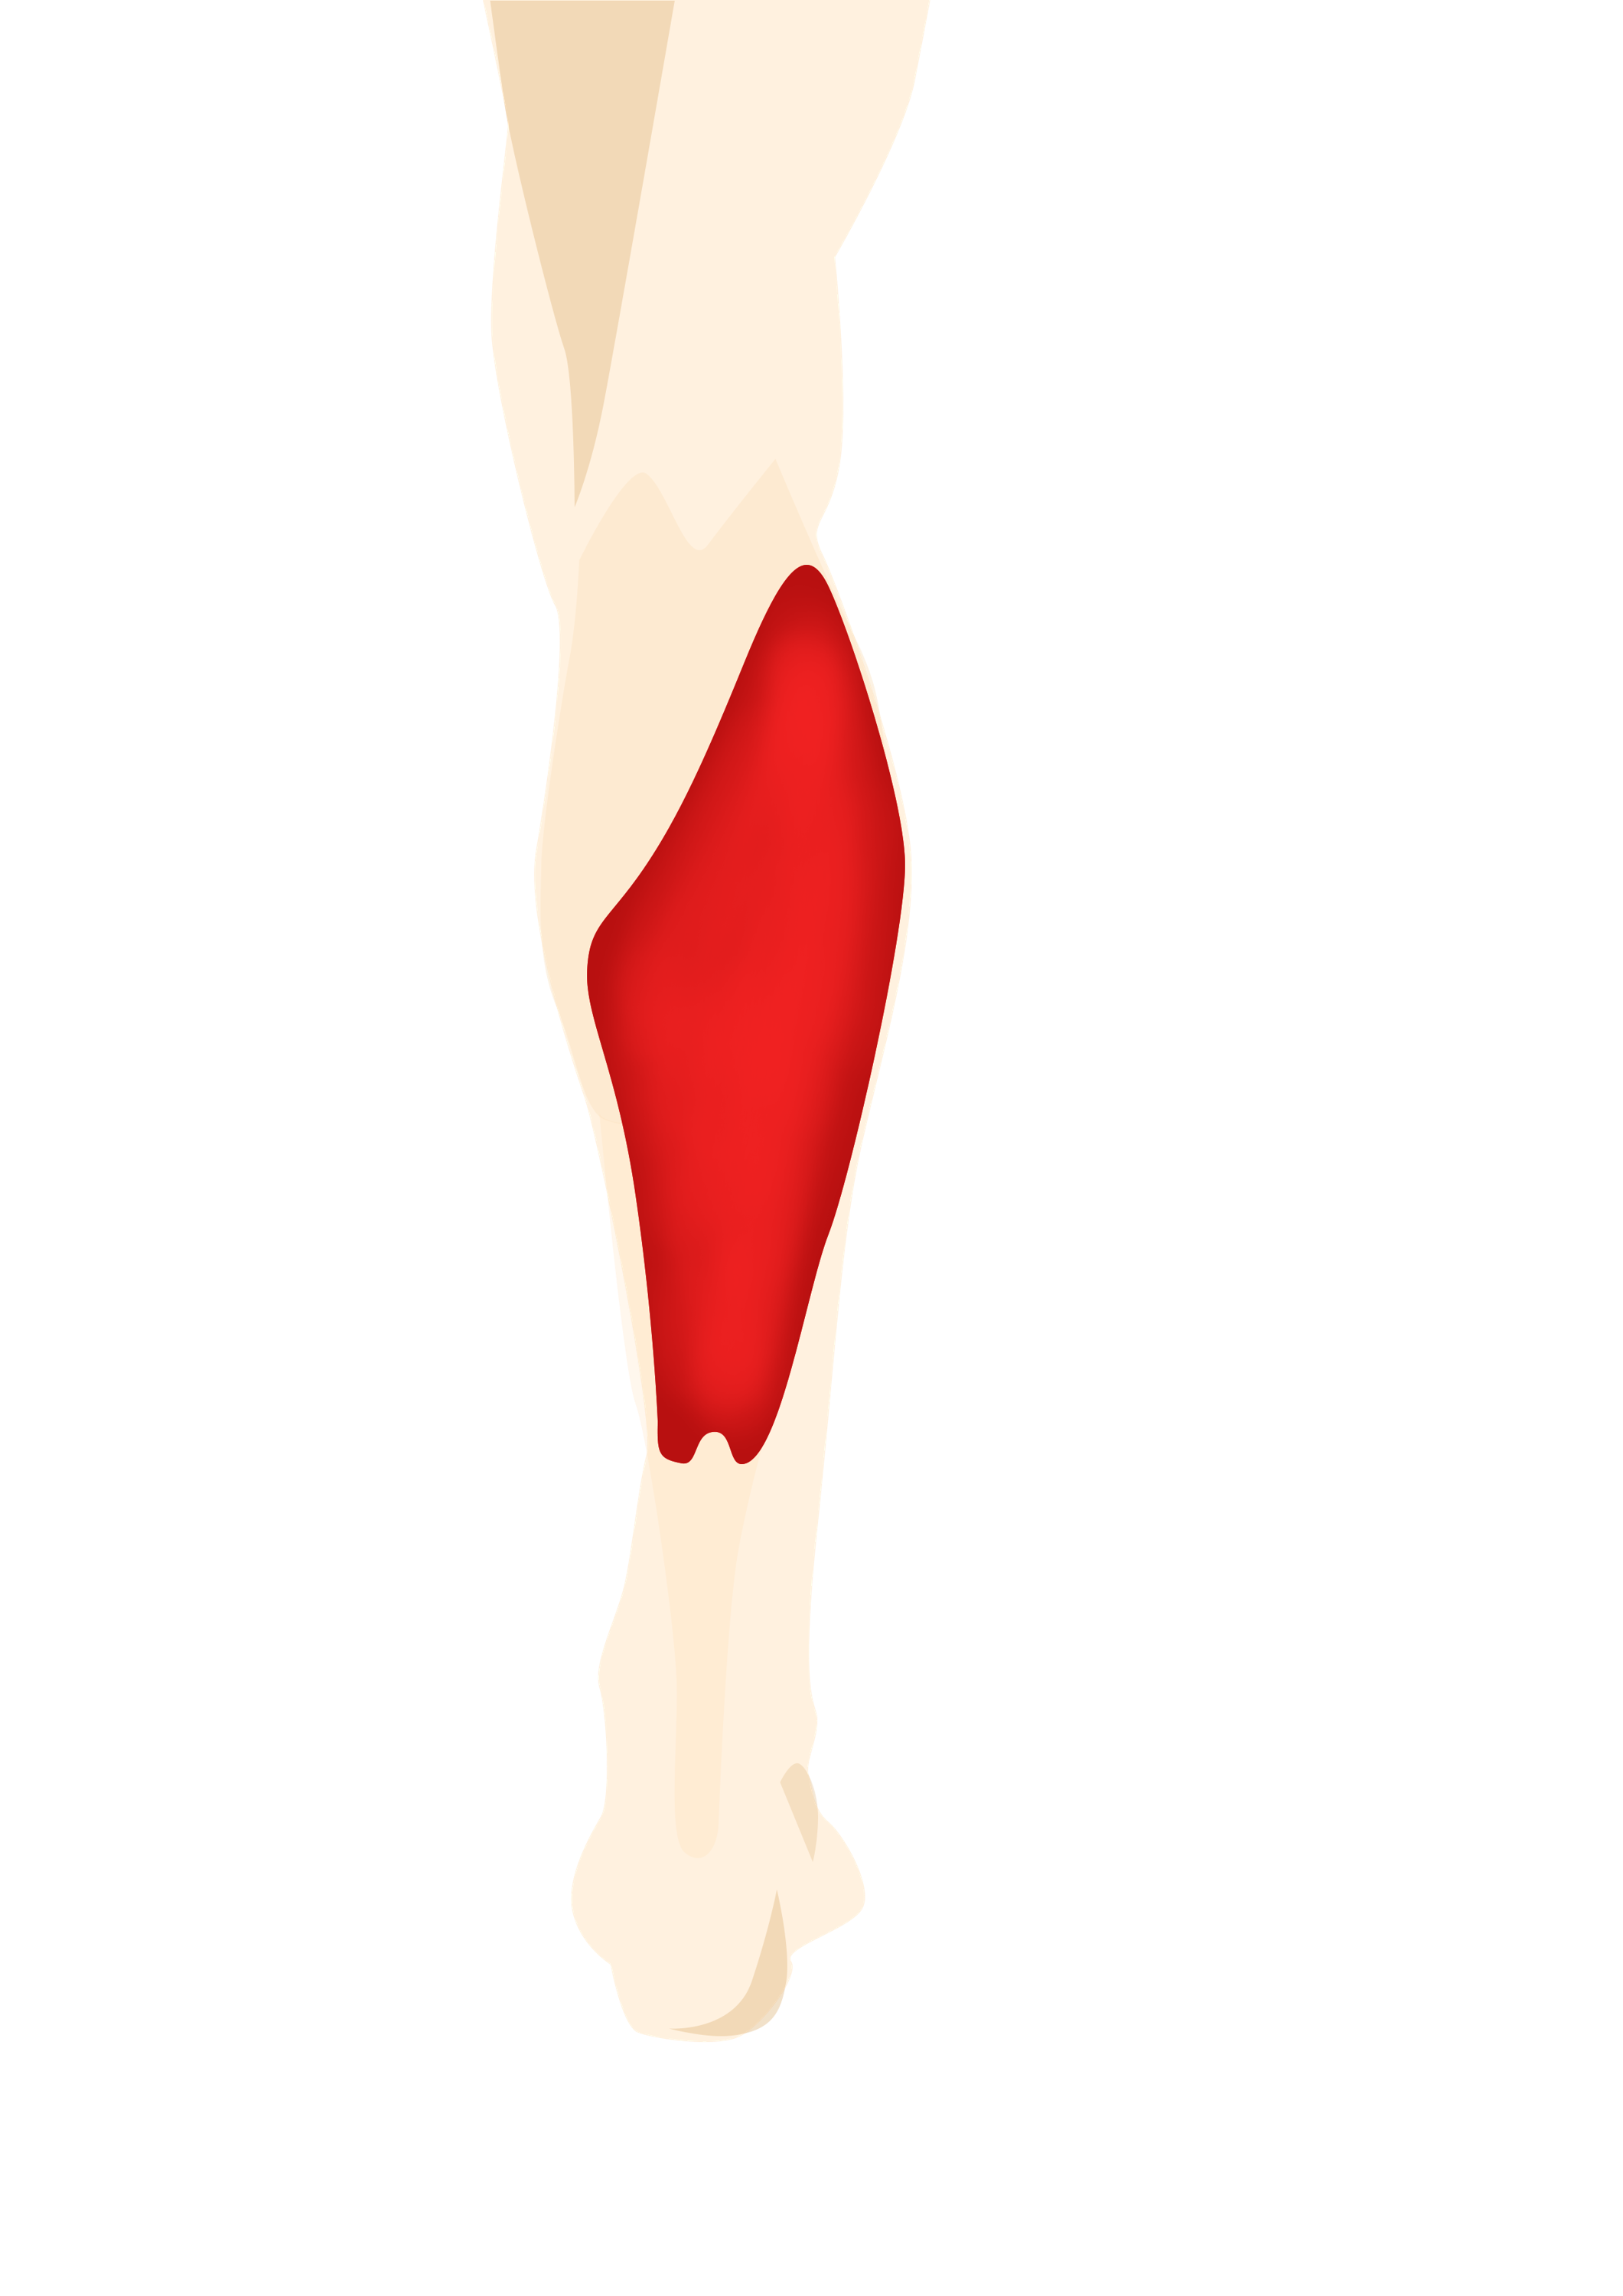 the soleus muscle